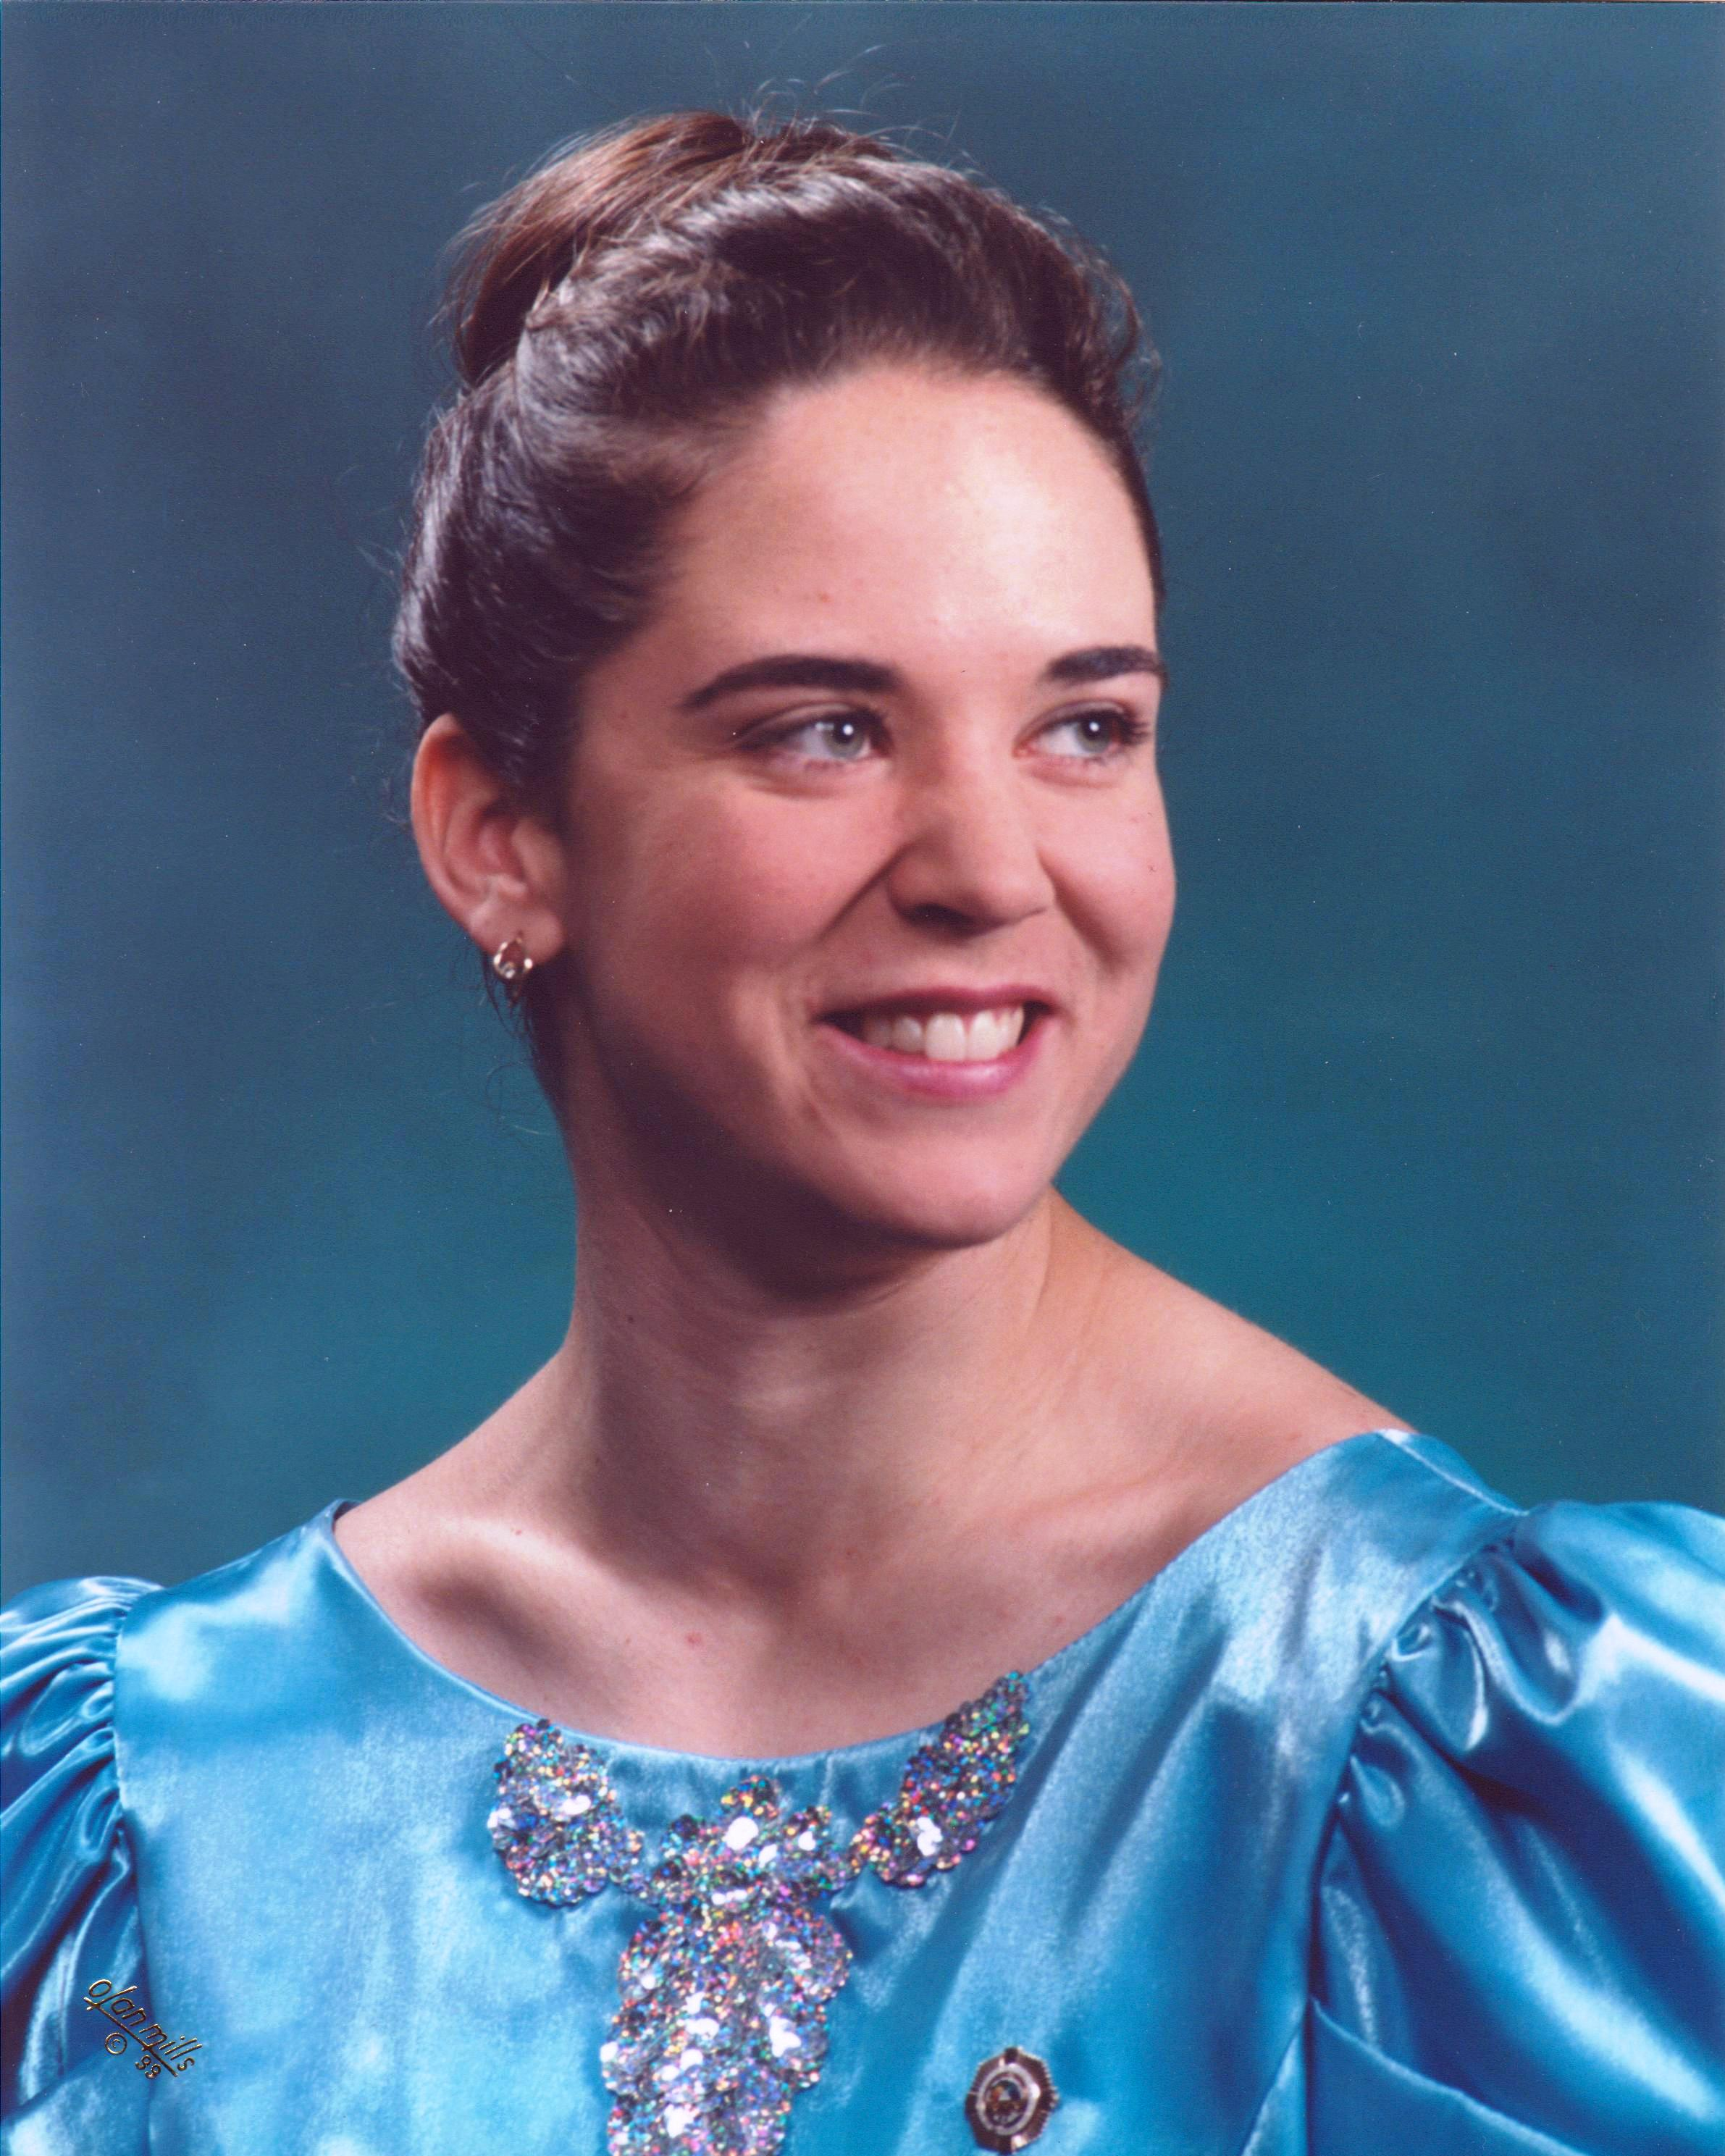 1999 Christy Blankenship.jpg